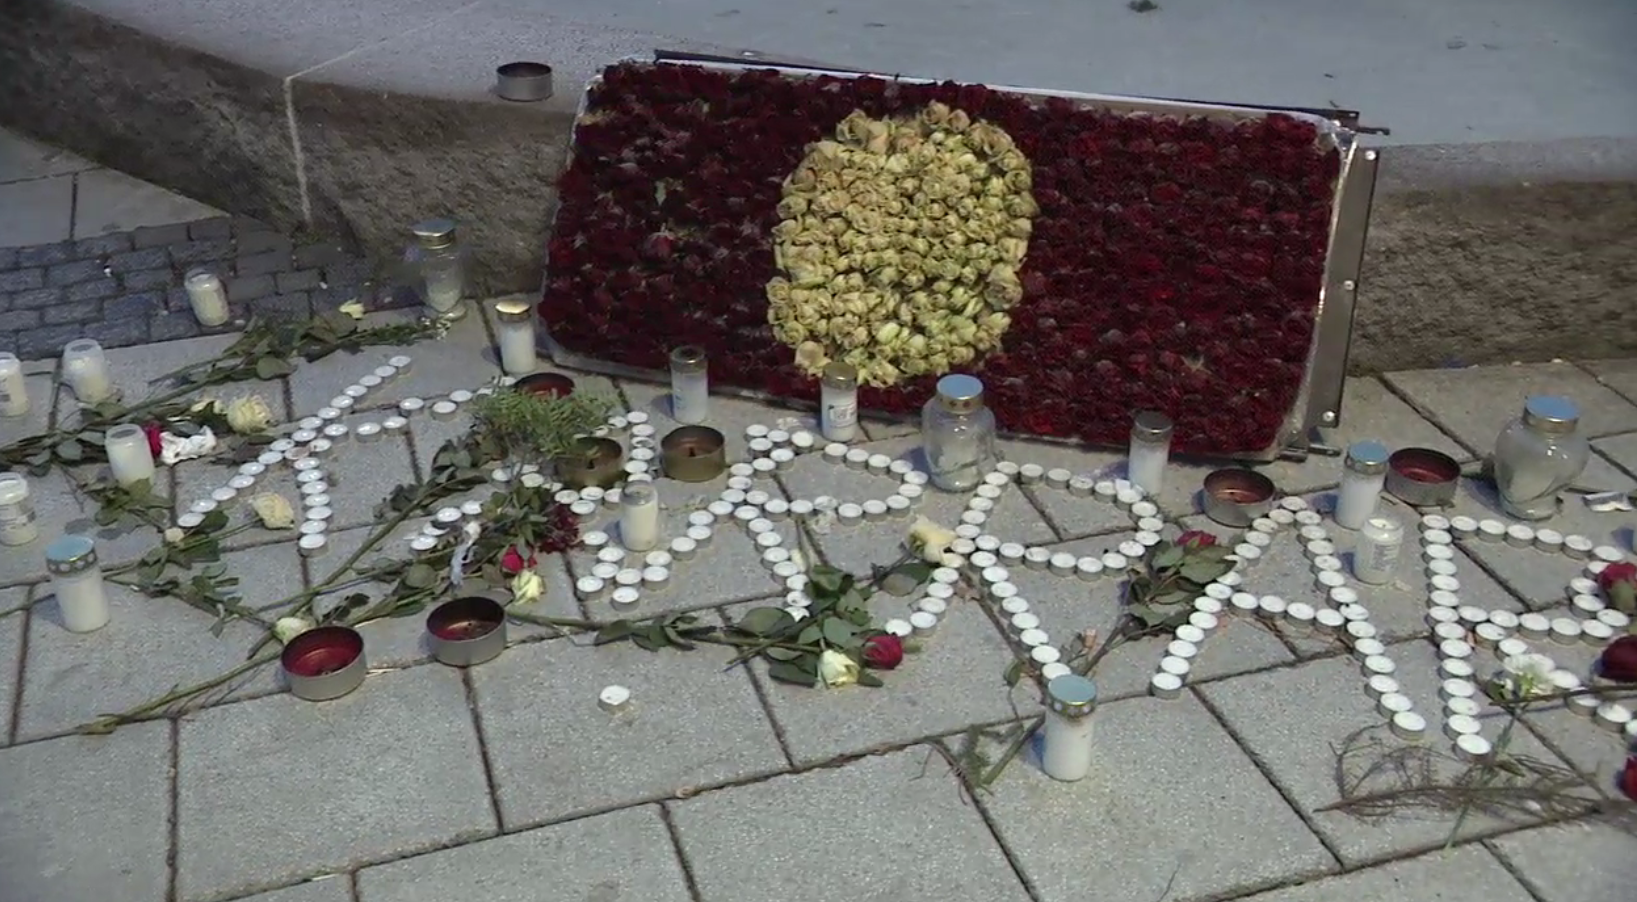 A memorial in the town square of Rinkeby honors a man who was shot and killed a week before Inside Your World arrived in Sweden. (Sinclair Broadcast Group)